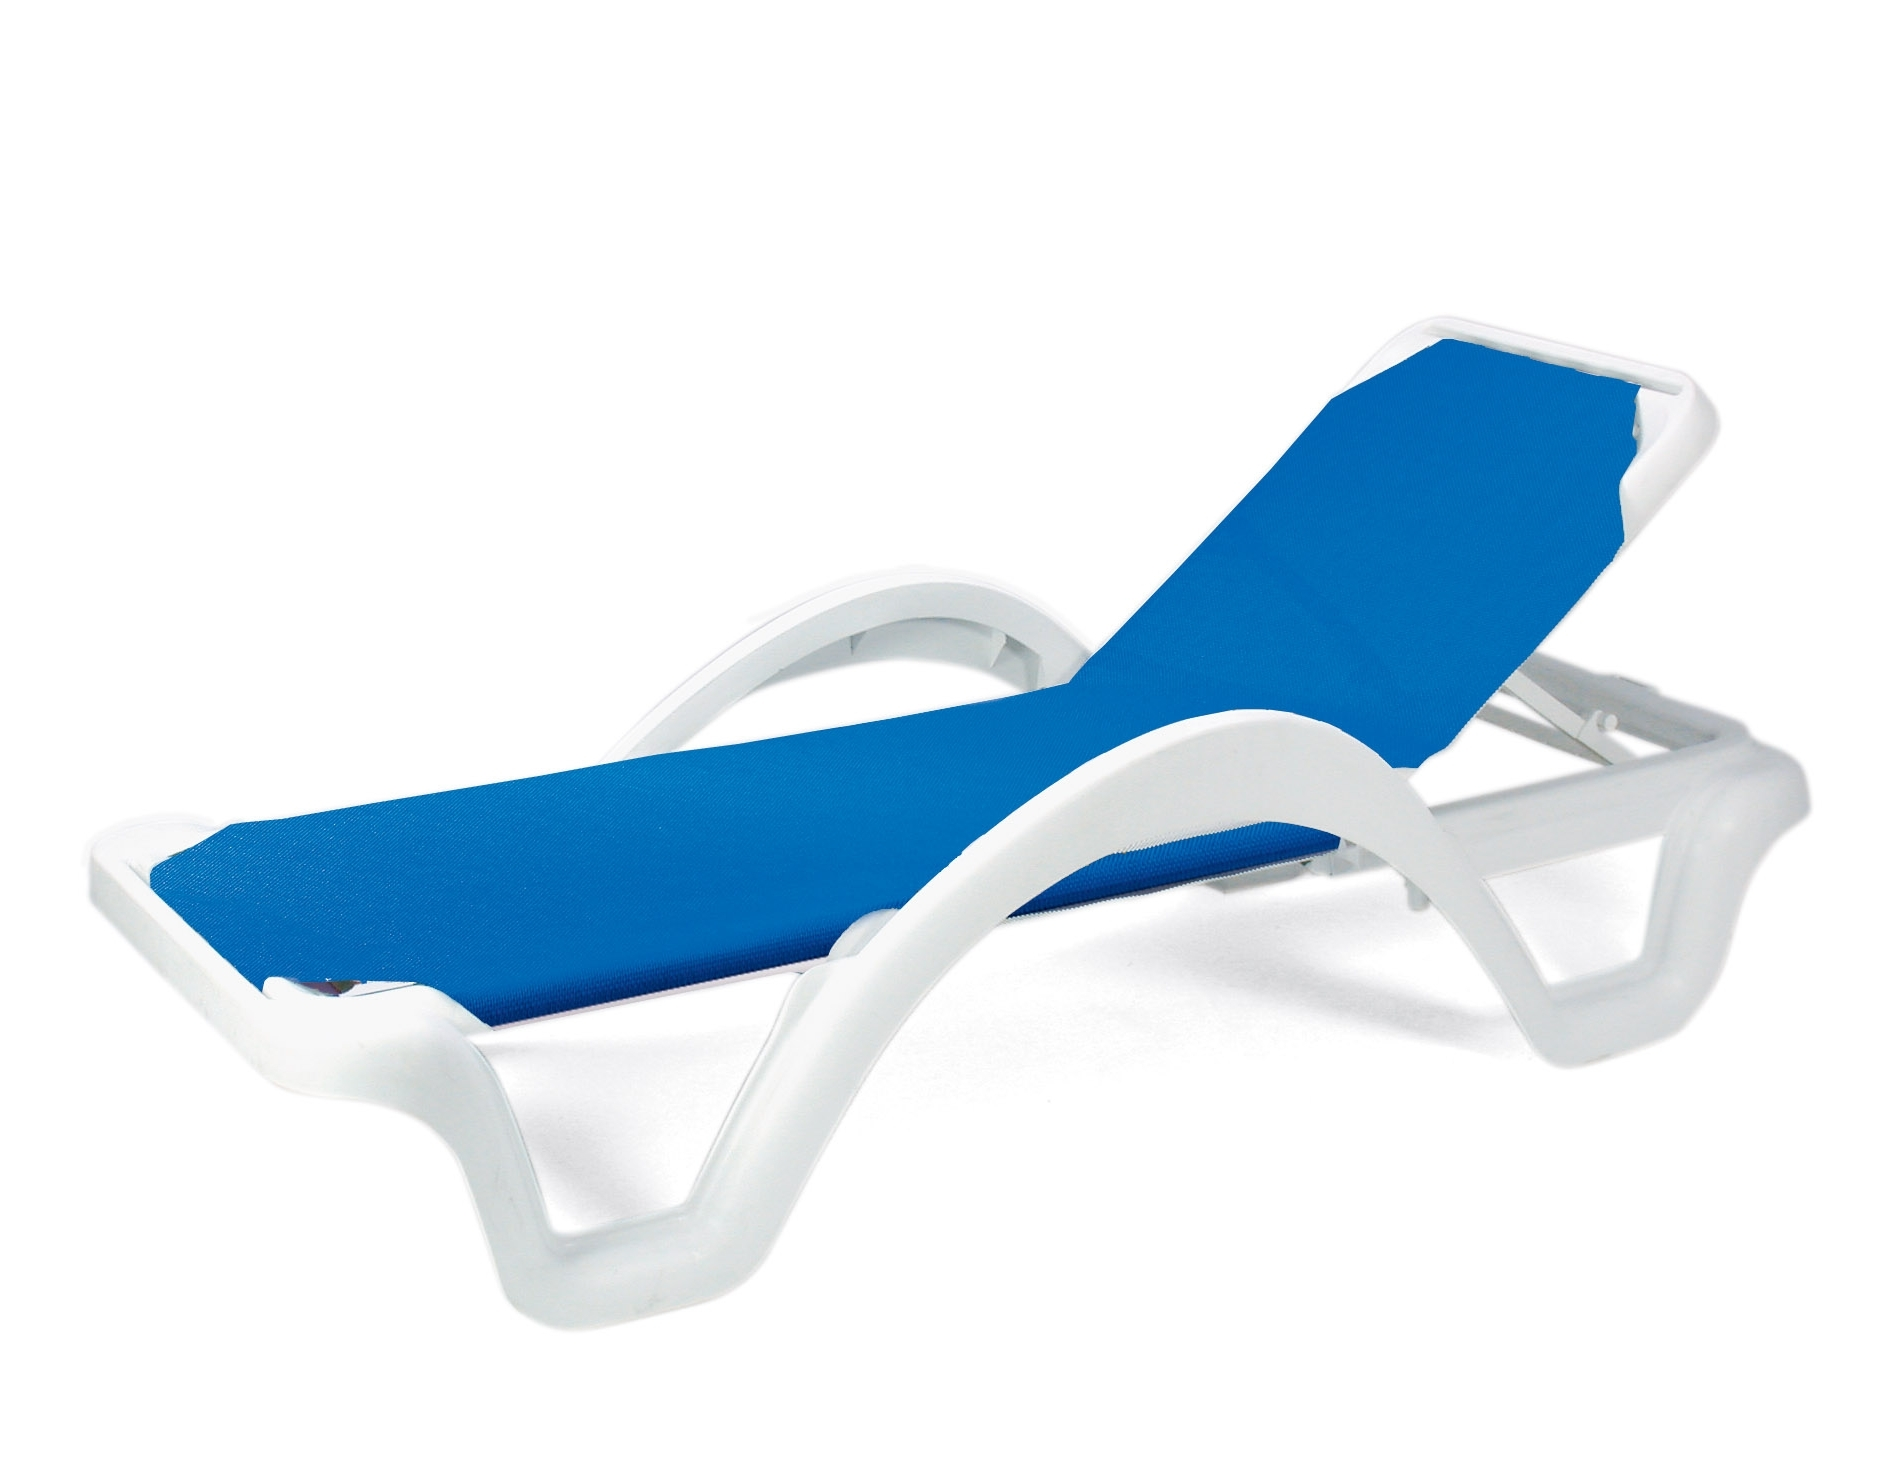 Commercial Grade Chaise Lounge Chairs With Regard To Latest Grosfillex Chaise Lounge Chairs (View 5 of 15)